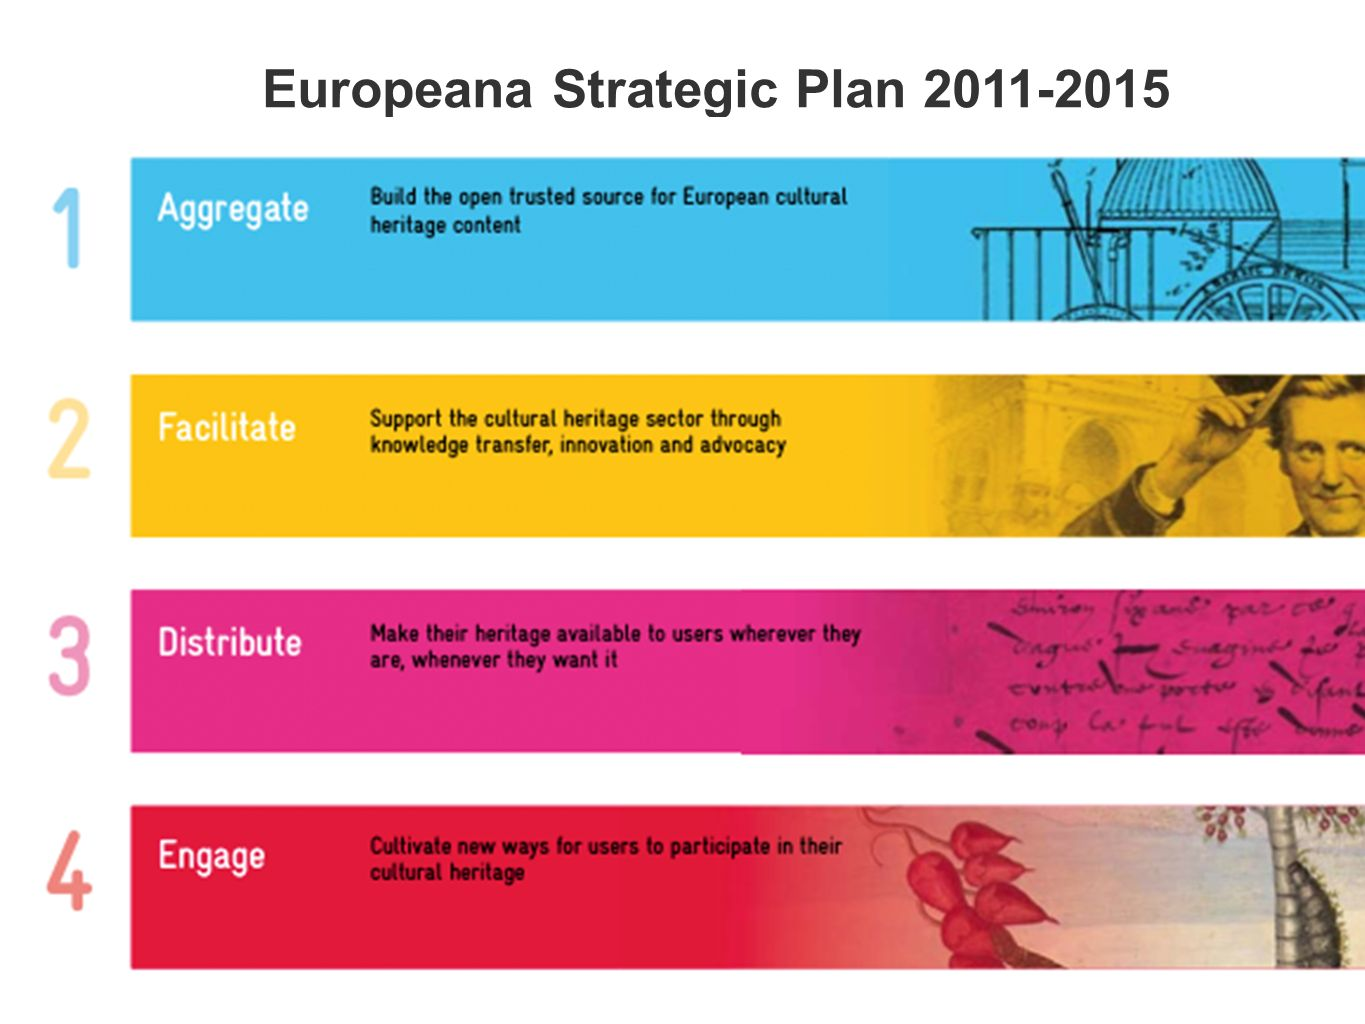 AGGREGATE DISTRIBUTE FACILITATE 1 3 2 ENGAGE 4 Europeana Strategic Plan 2011-2015